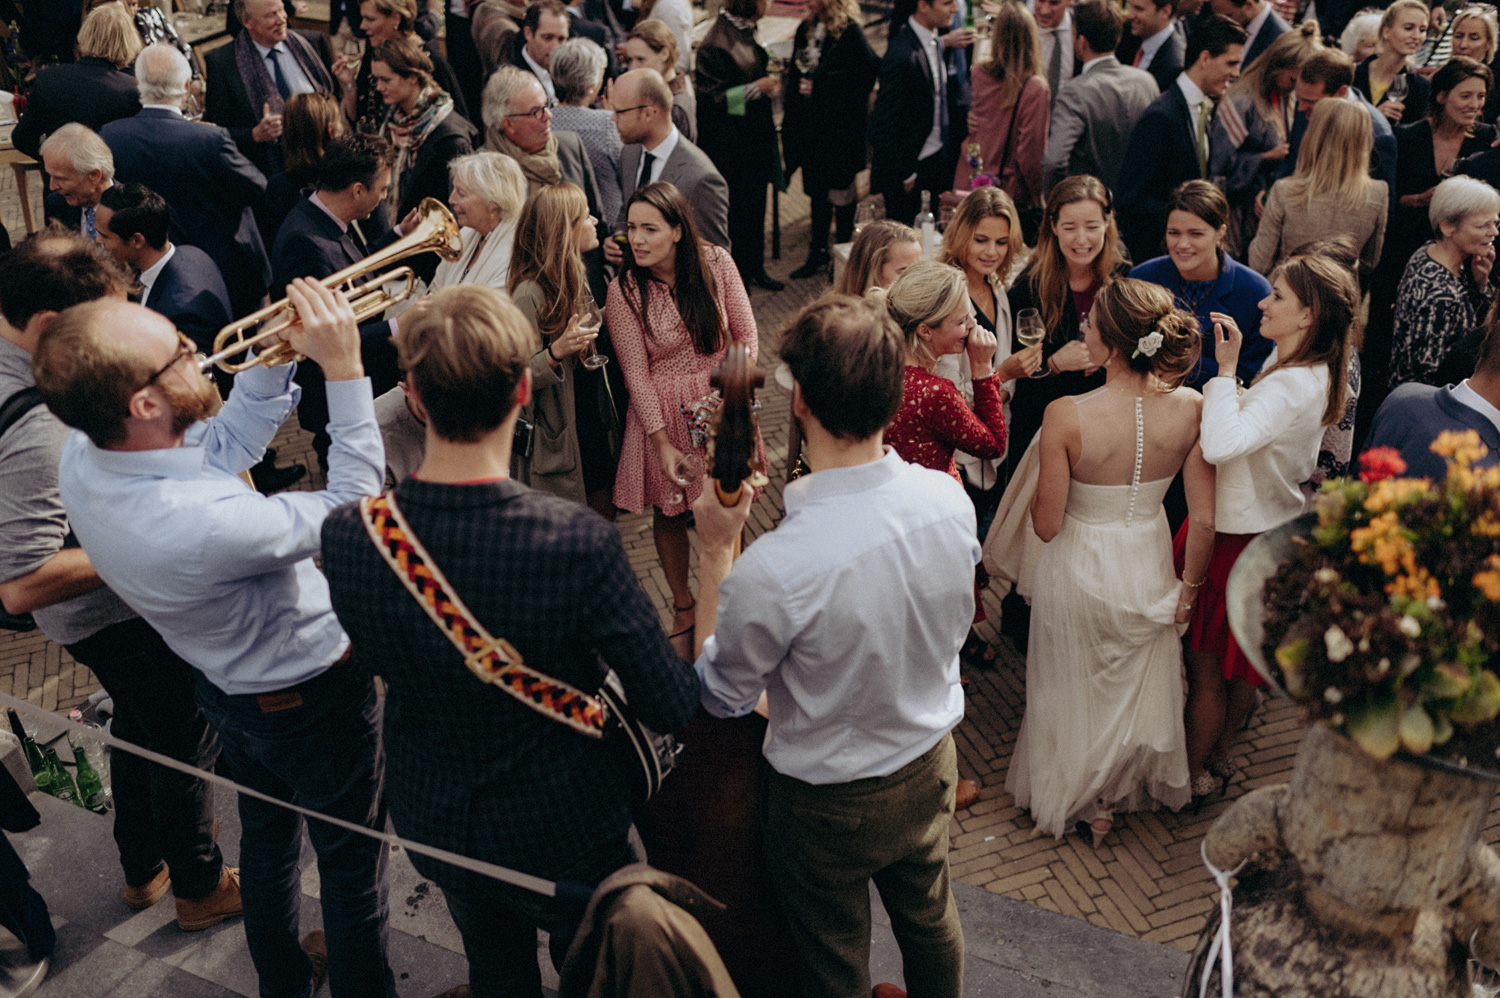 Band playing wedding music at terrace of VondelCS